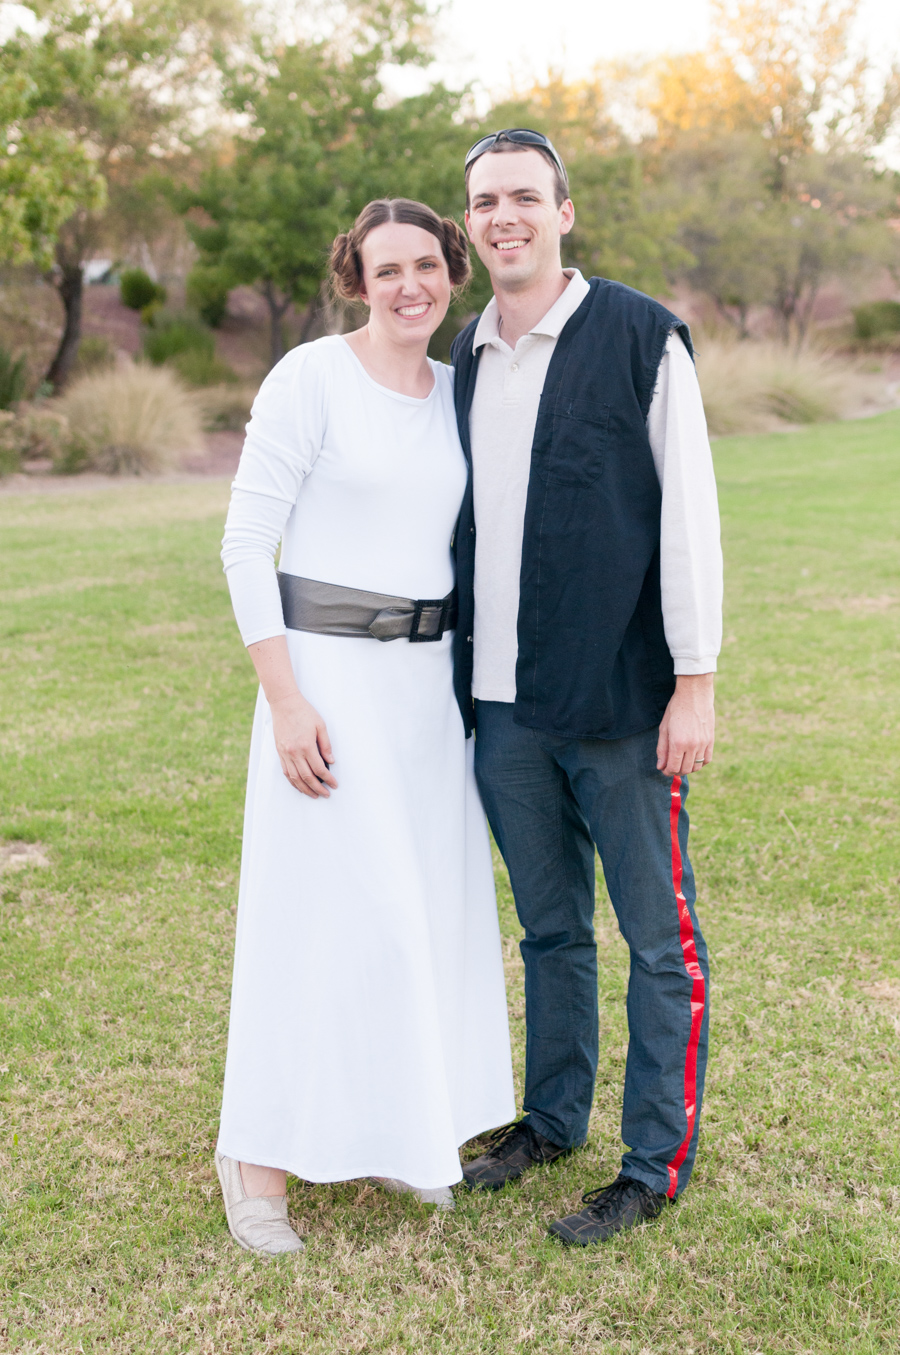 Star Wars Costume - Han & Leia